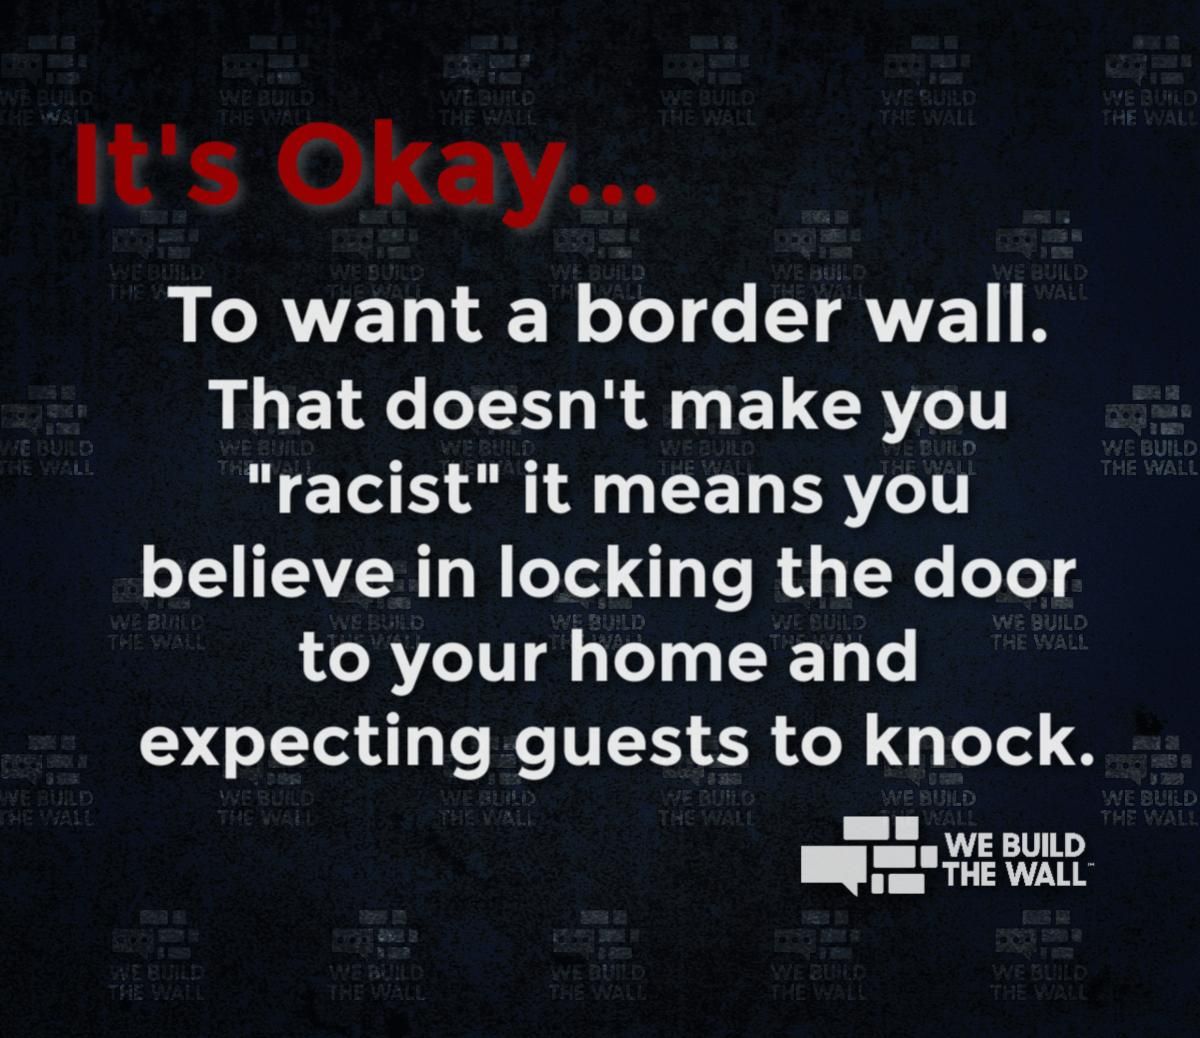 Here&#39;s your Monday Morning Reminder... Let others know   #WeBuildTheWall  @mamendoza480 @SteveRonnebeck @DustinStockton @JenLawrence21<br>http://pic.twitter.com/nVT1UGhktt